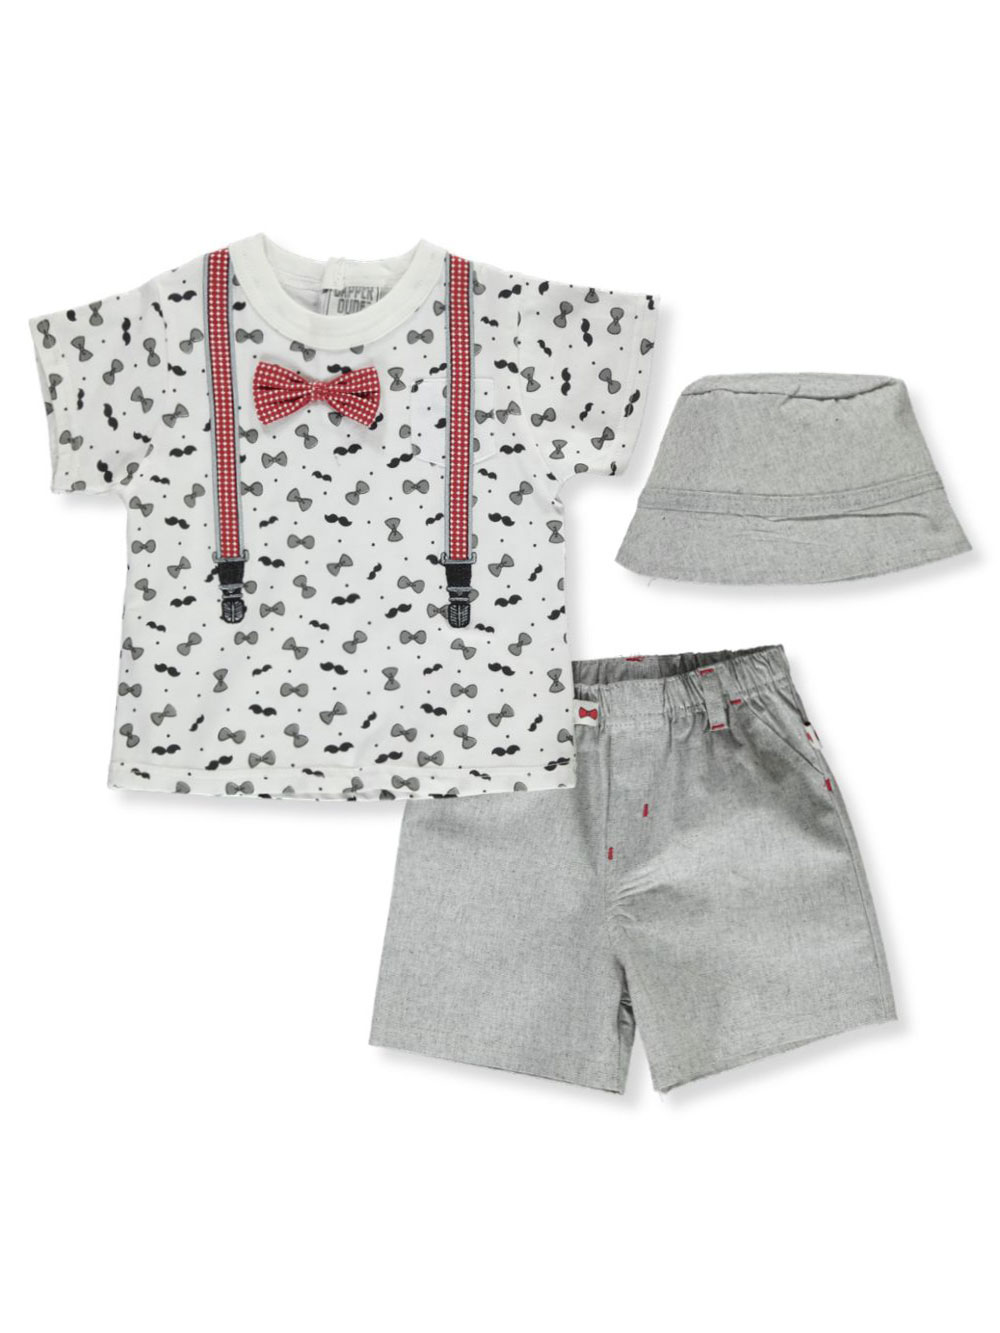 Boys White and Red Short Sets